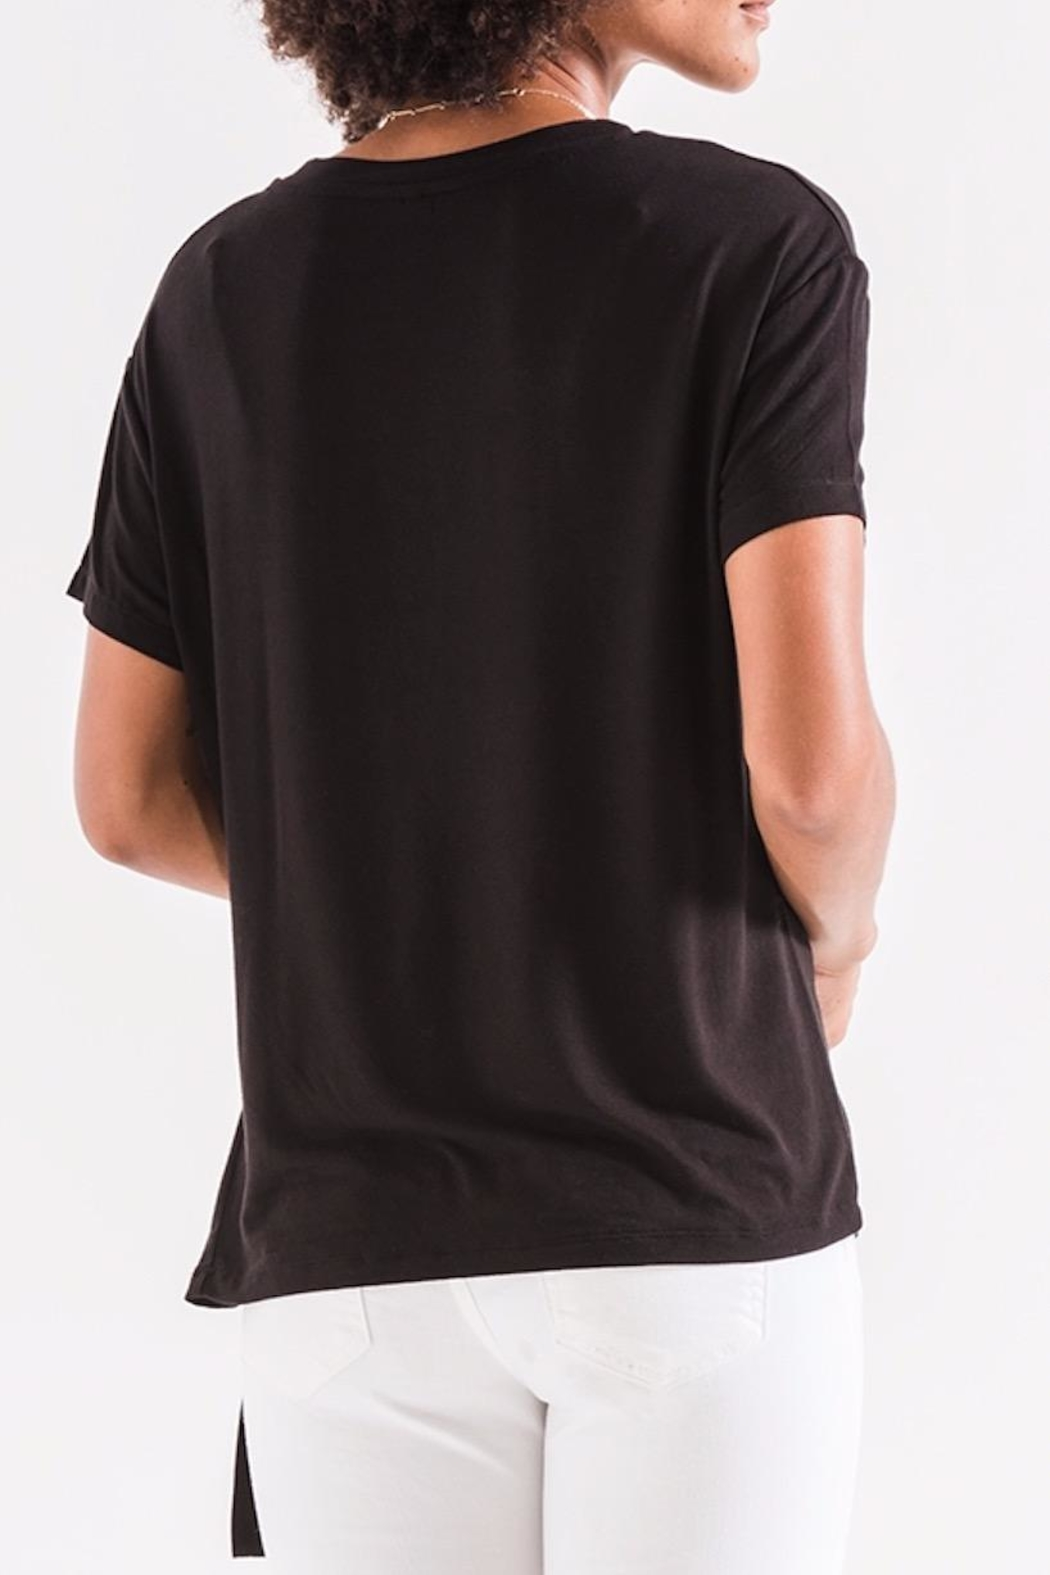 z supply Side Tie Tee - Front Full Image